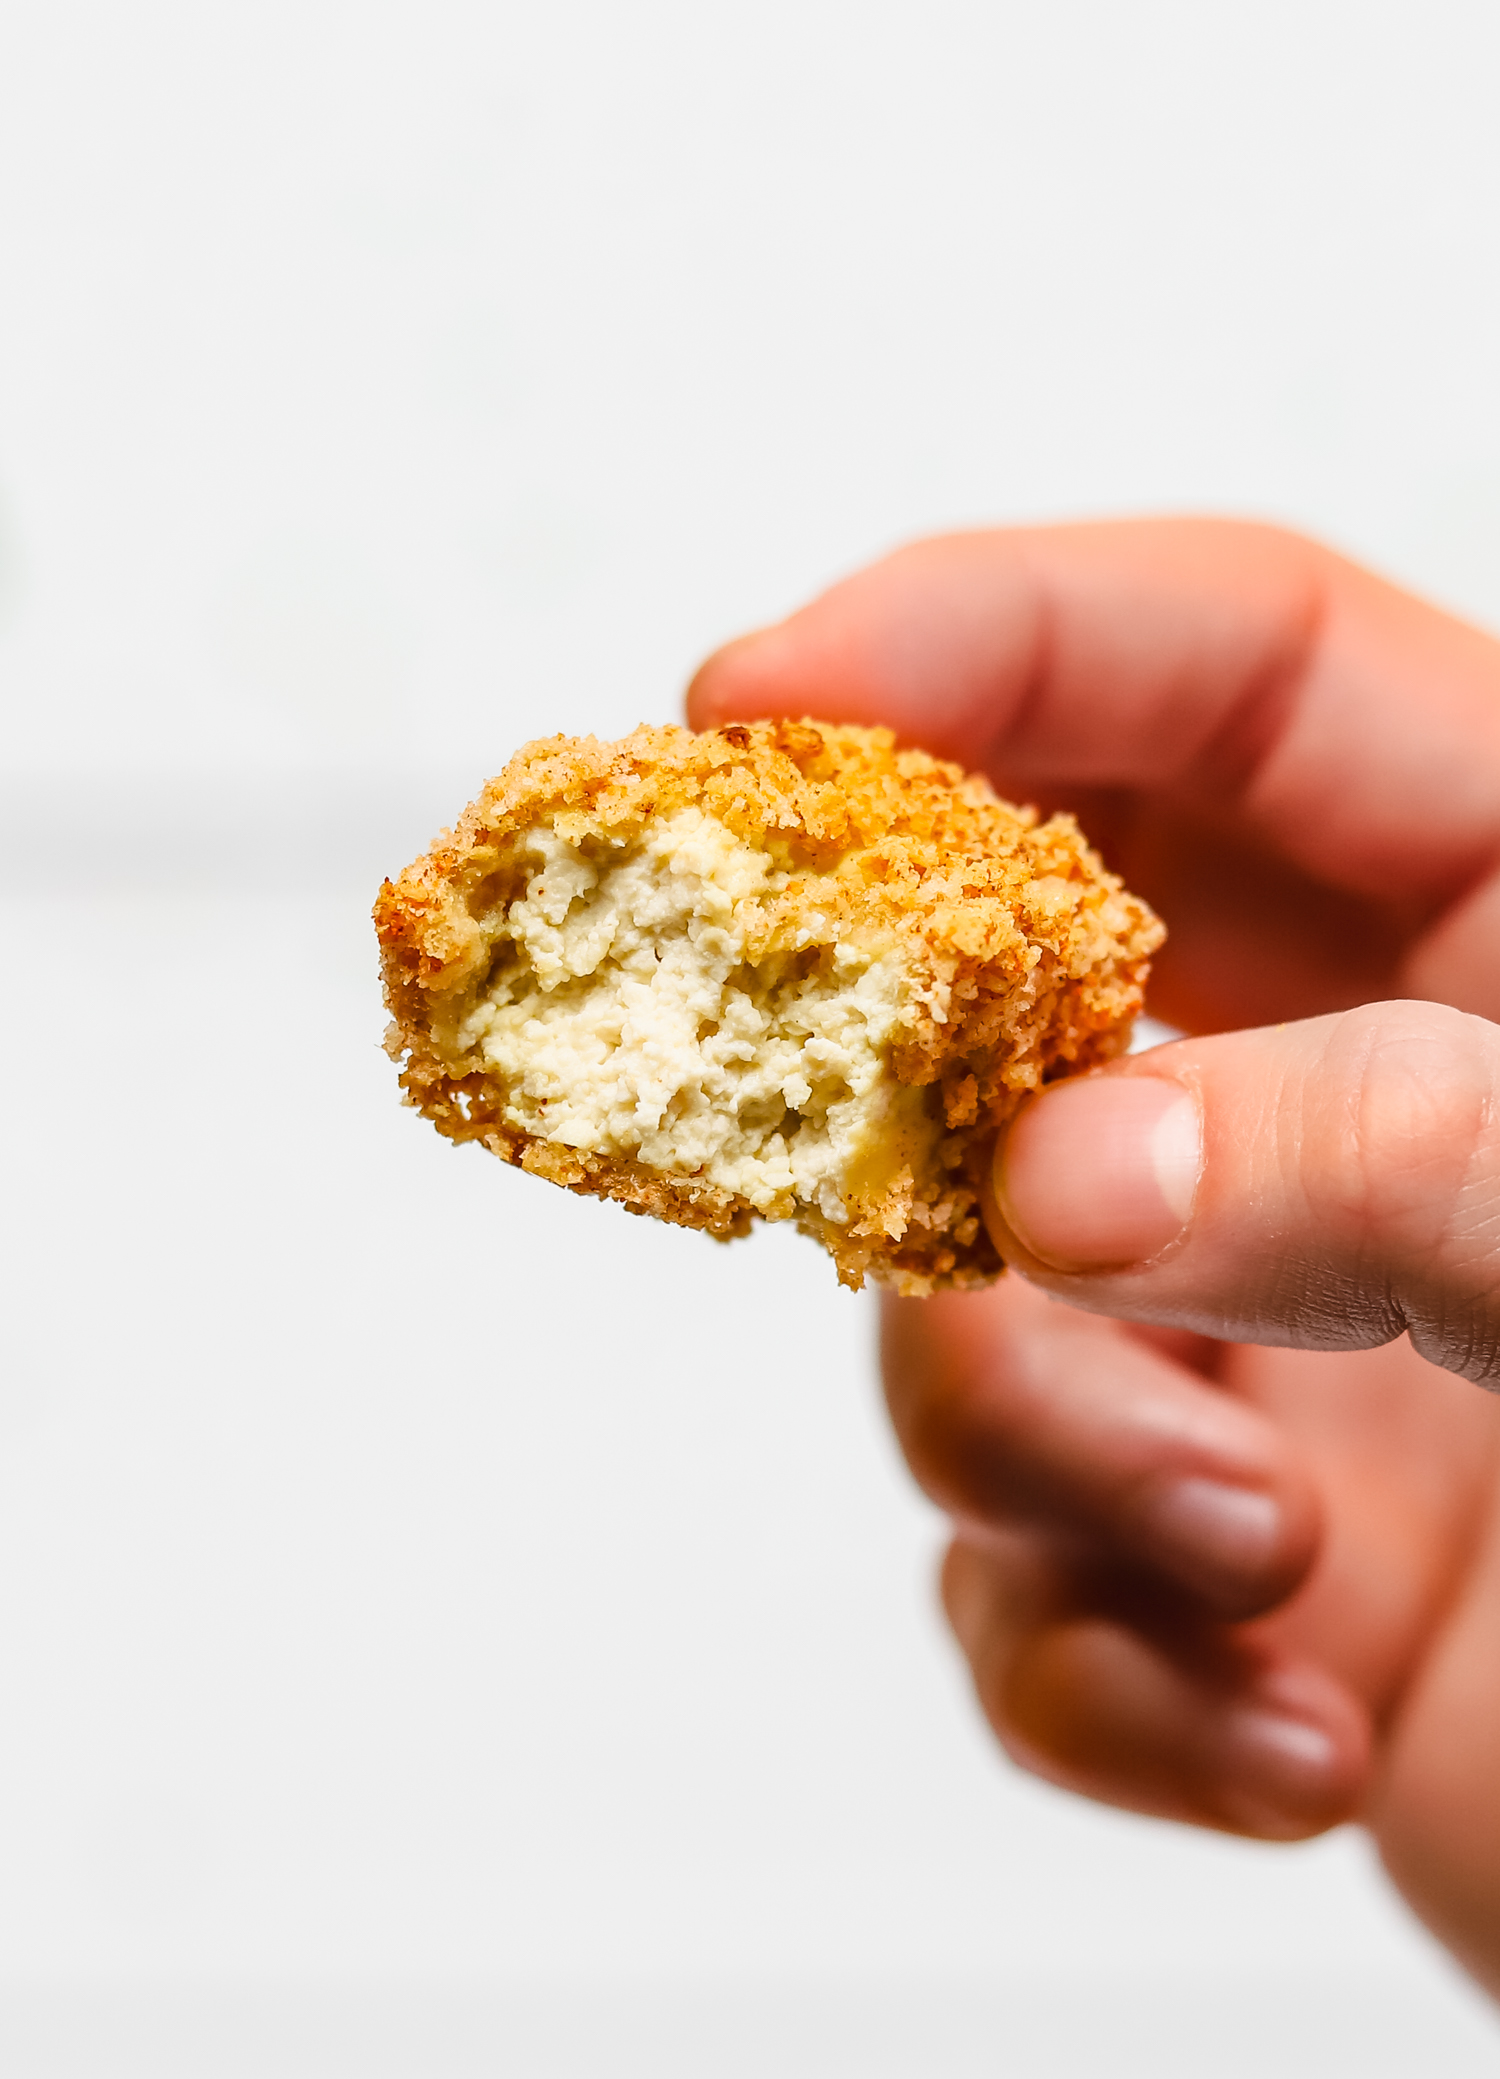 Bite taken out of a vegan chicken nugget, revealing a chewy texture created by using tofu that has been frozen and thawed.